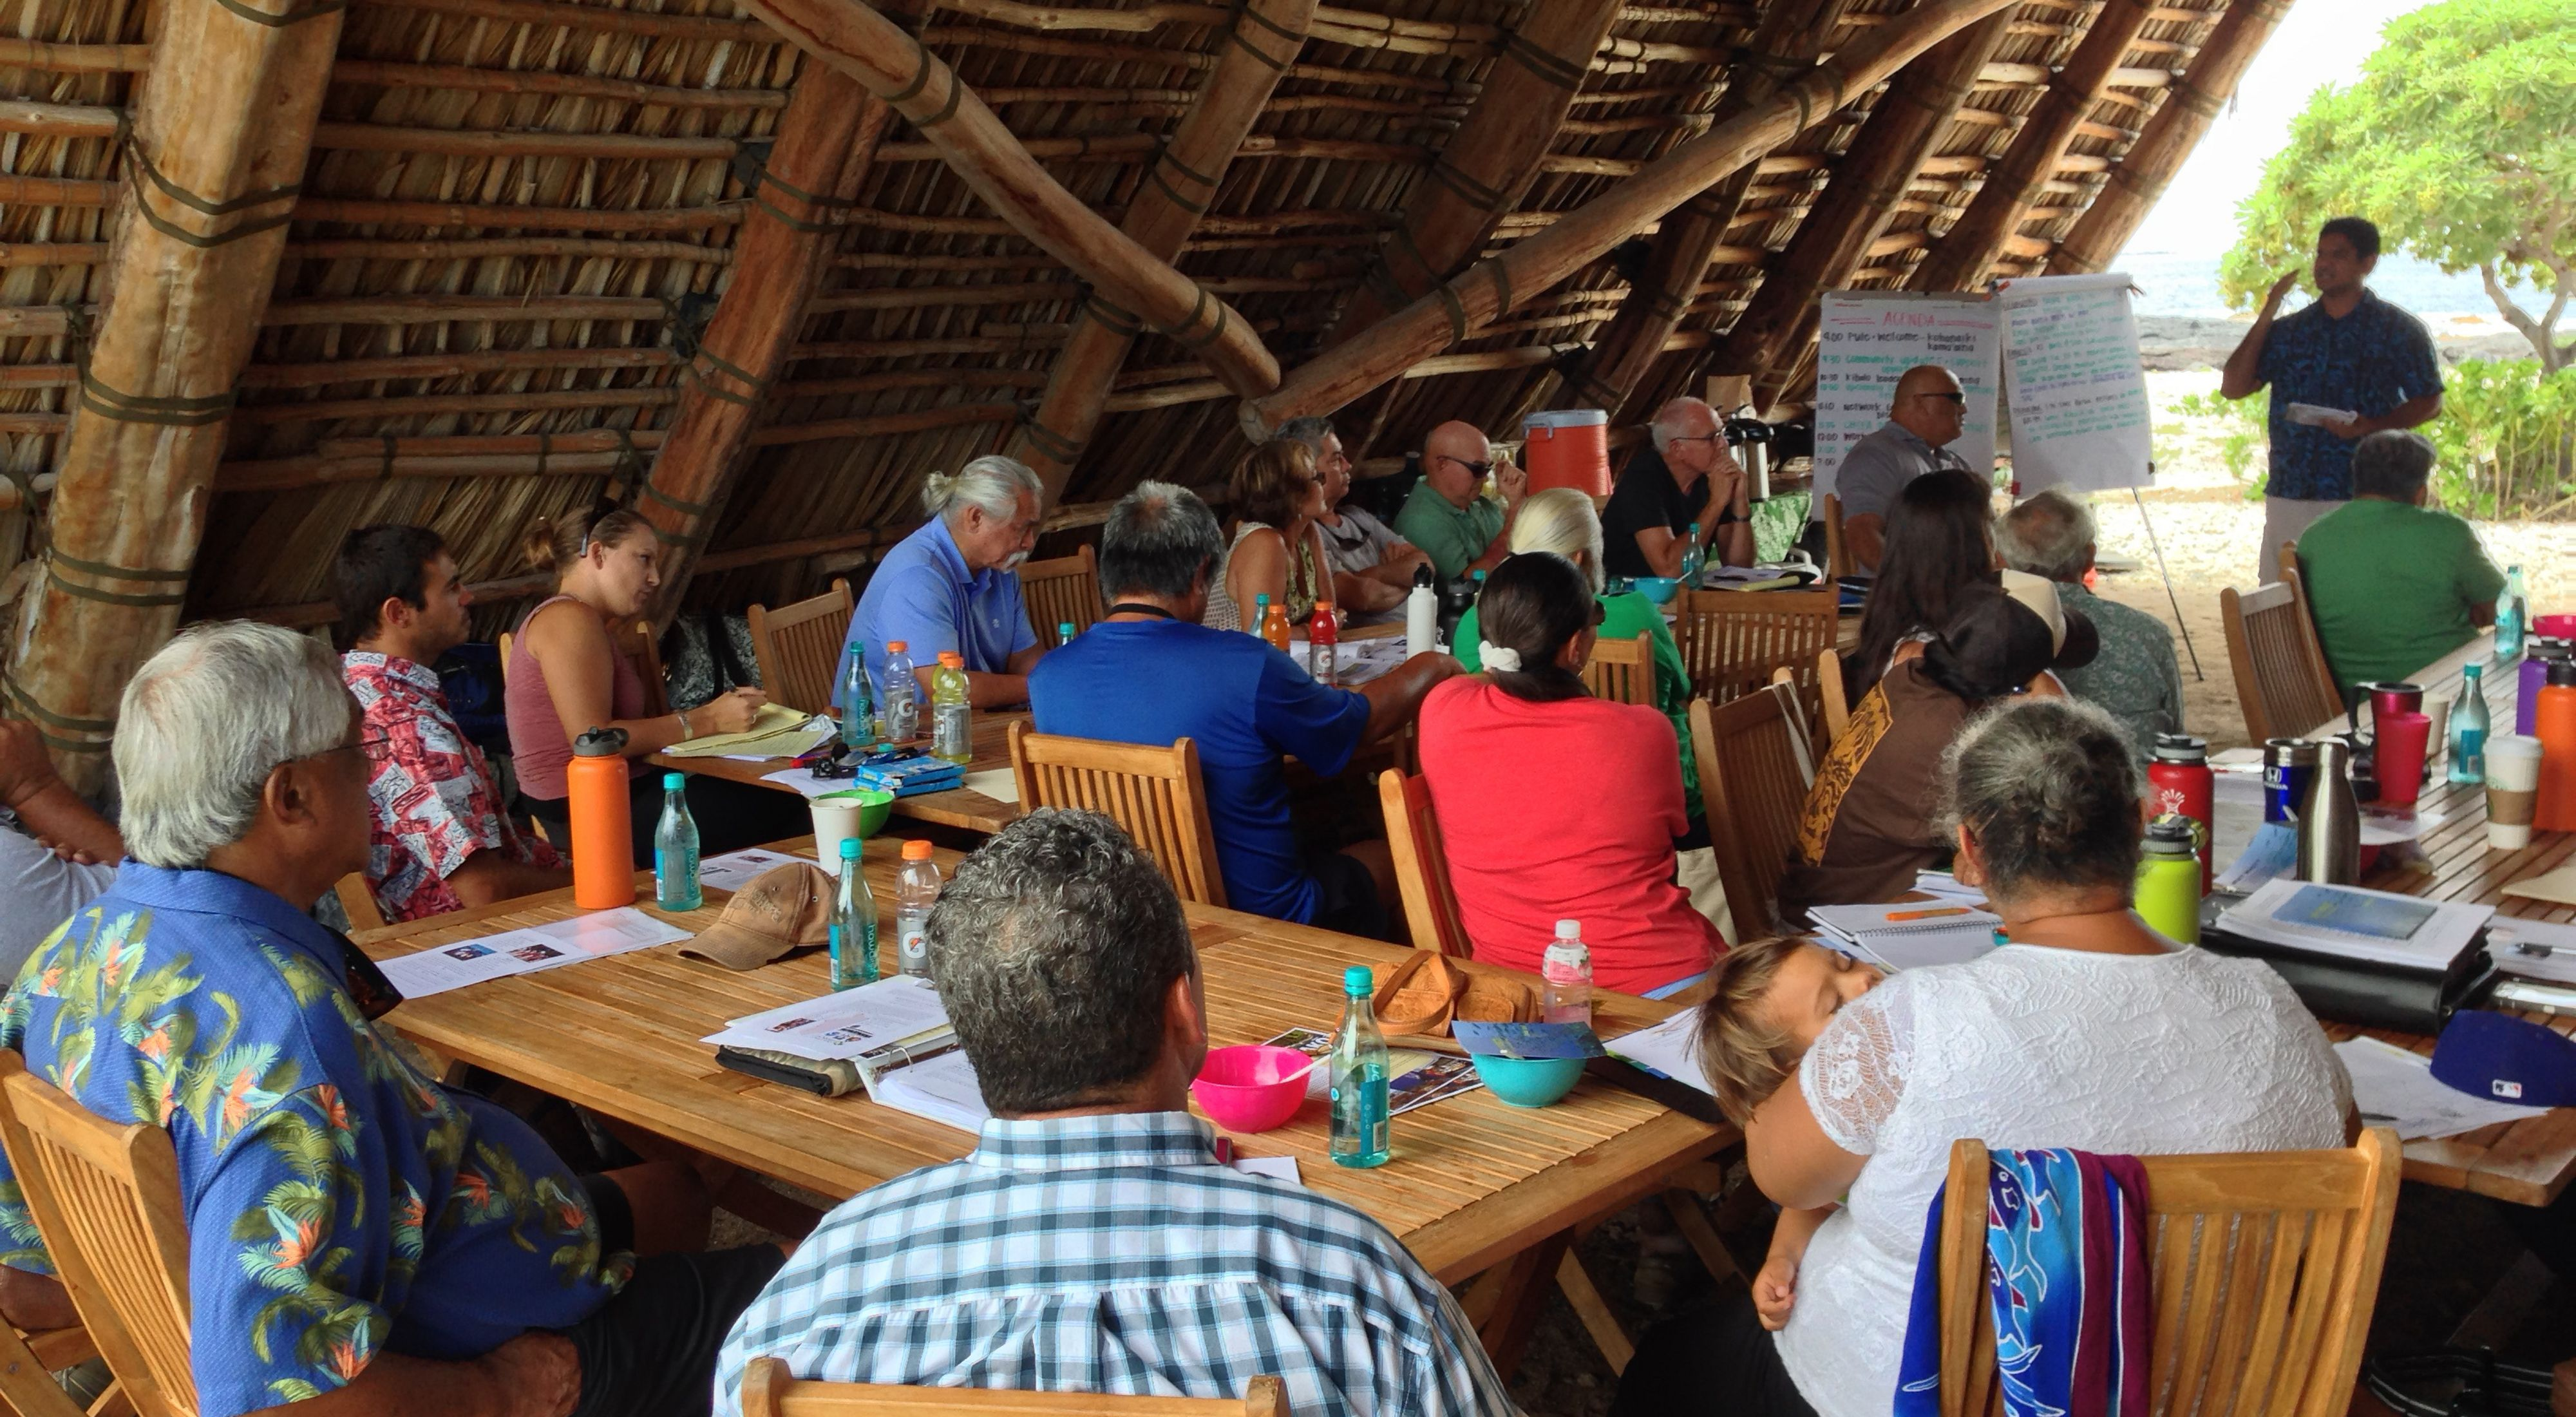 About 20 community members of all ages sitting at tables under a wooden beachside shelter listening to a presentation by a man at the front of the group.